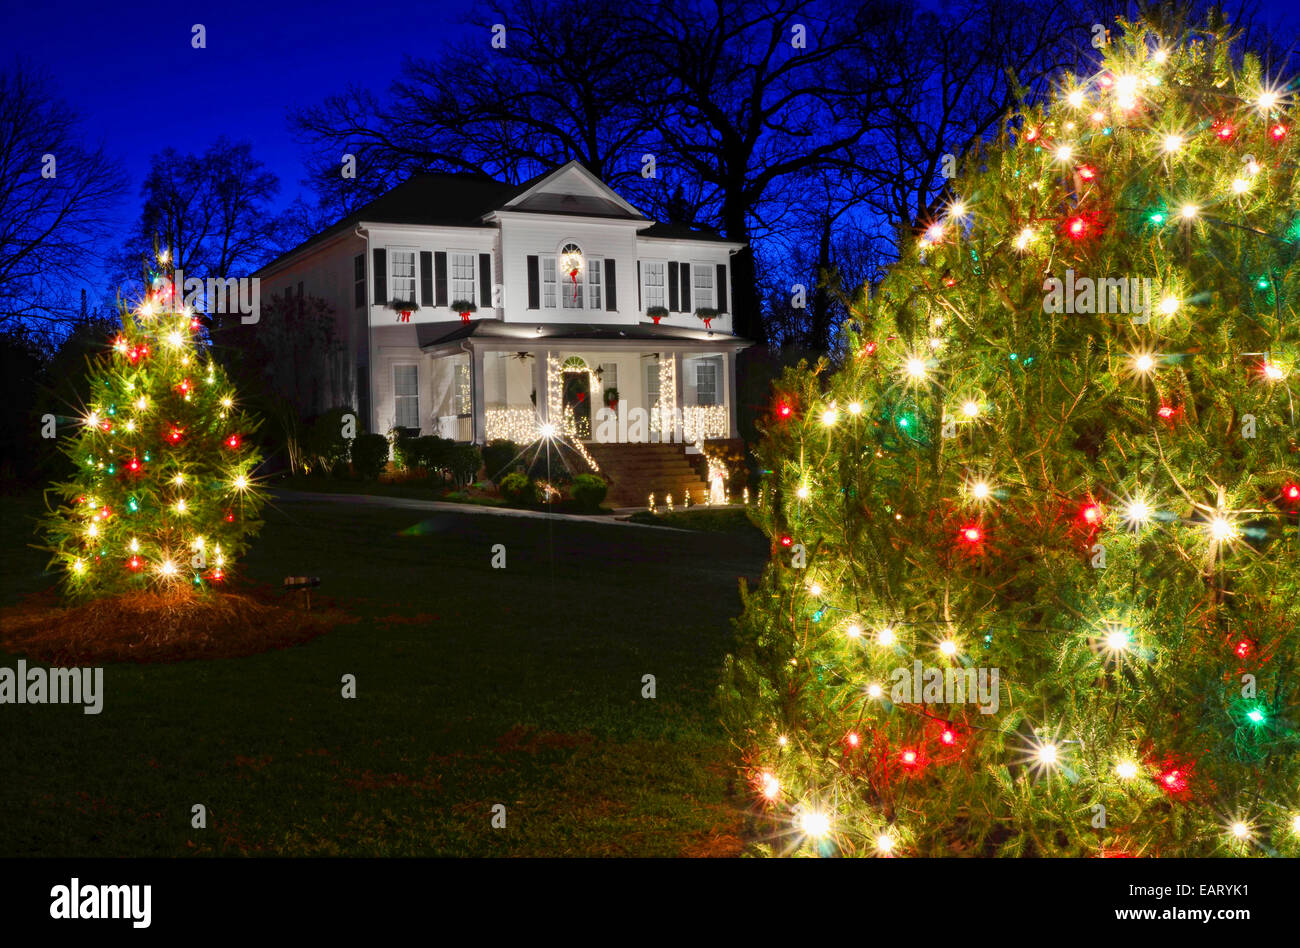 outdoor christmas trees have been decorated with red green and white lights and shot against